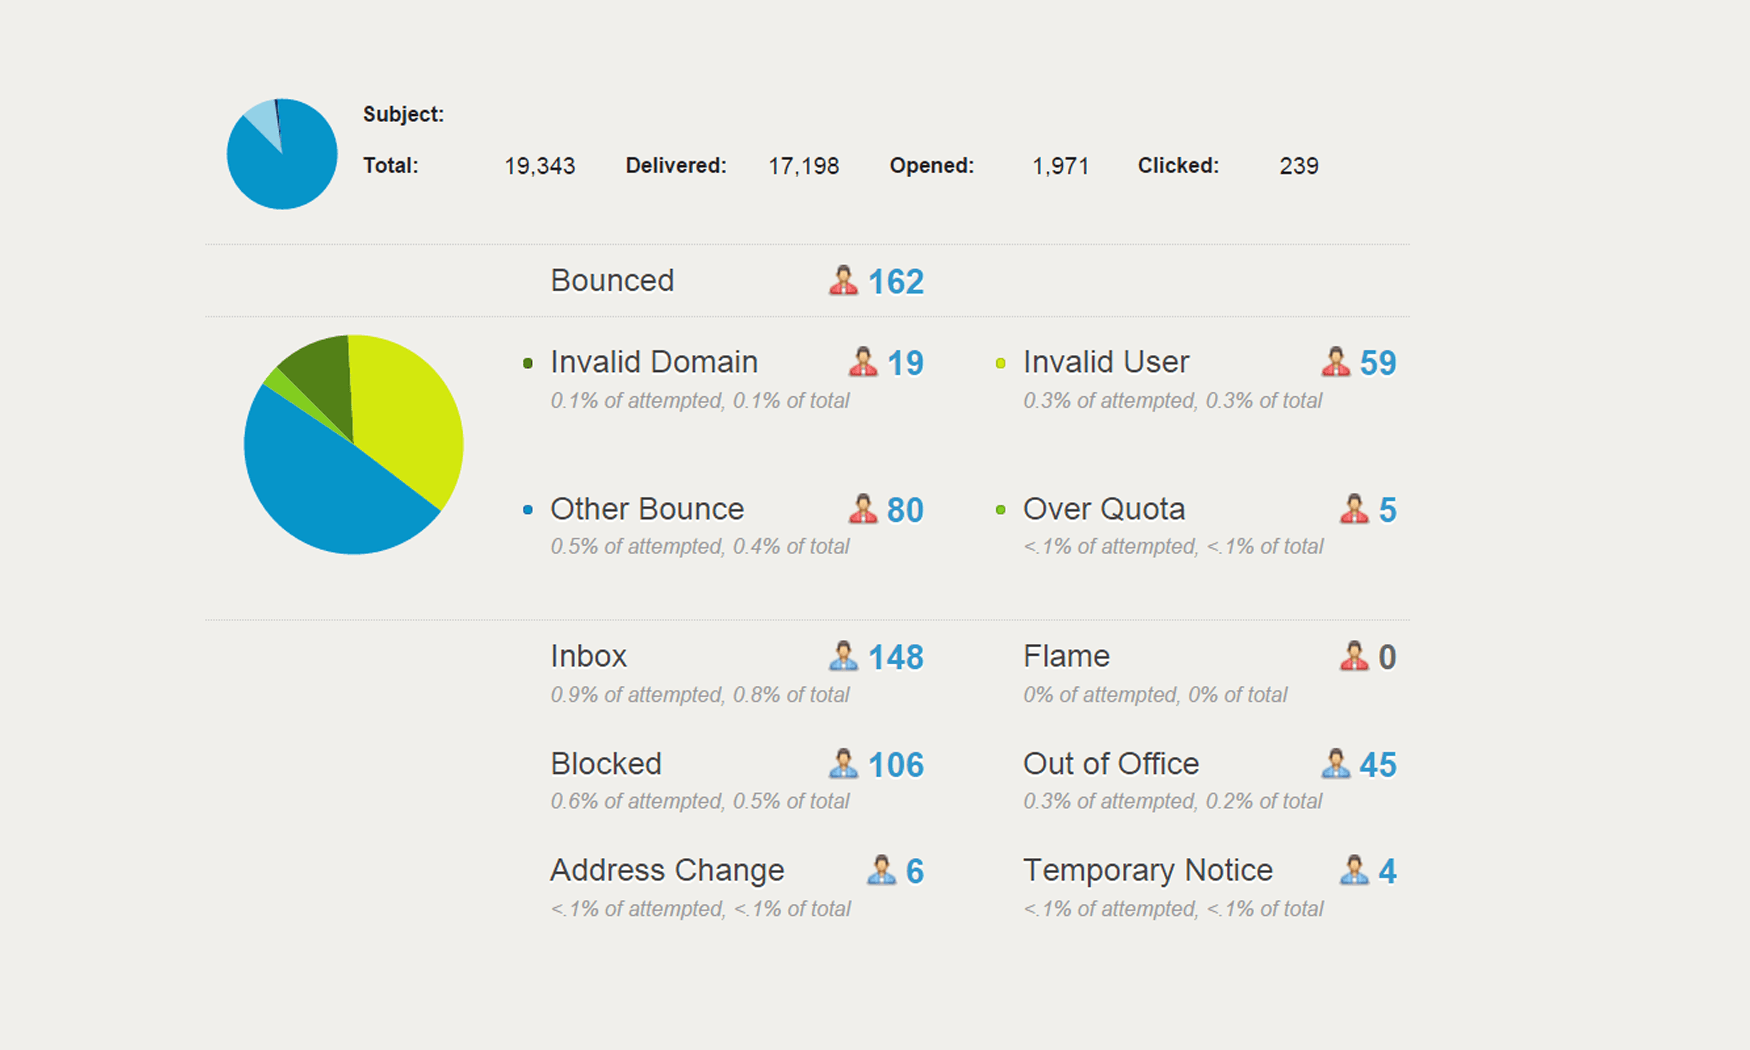 A breakdown of bounced, unsubscribers and invalid email accounts